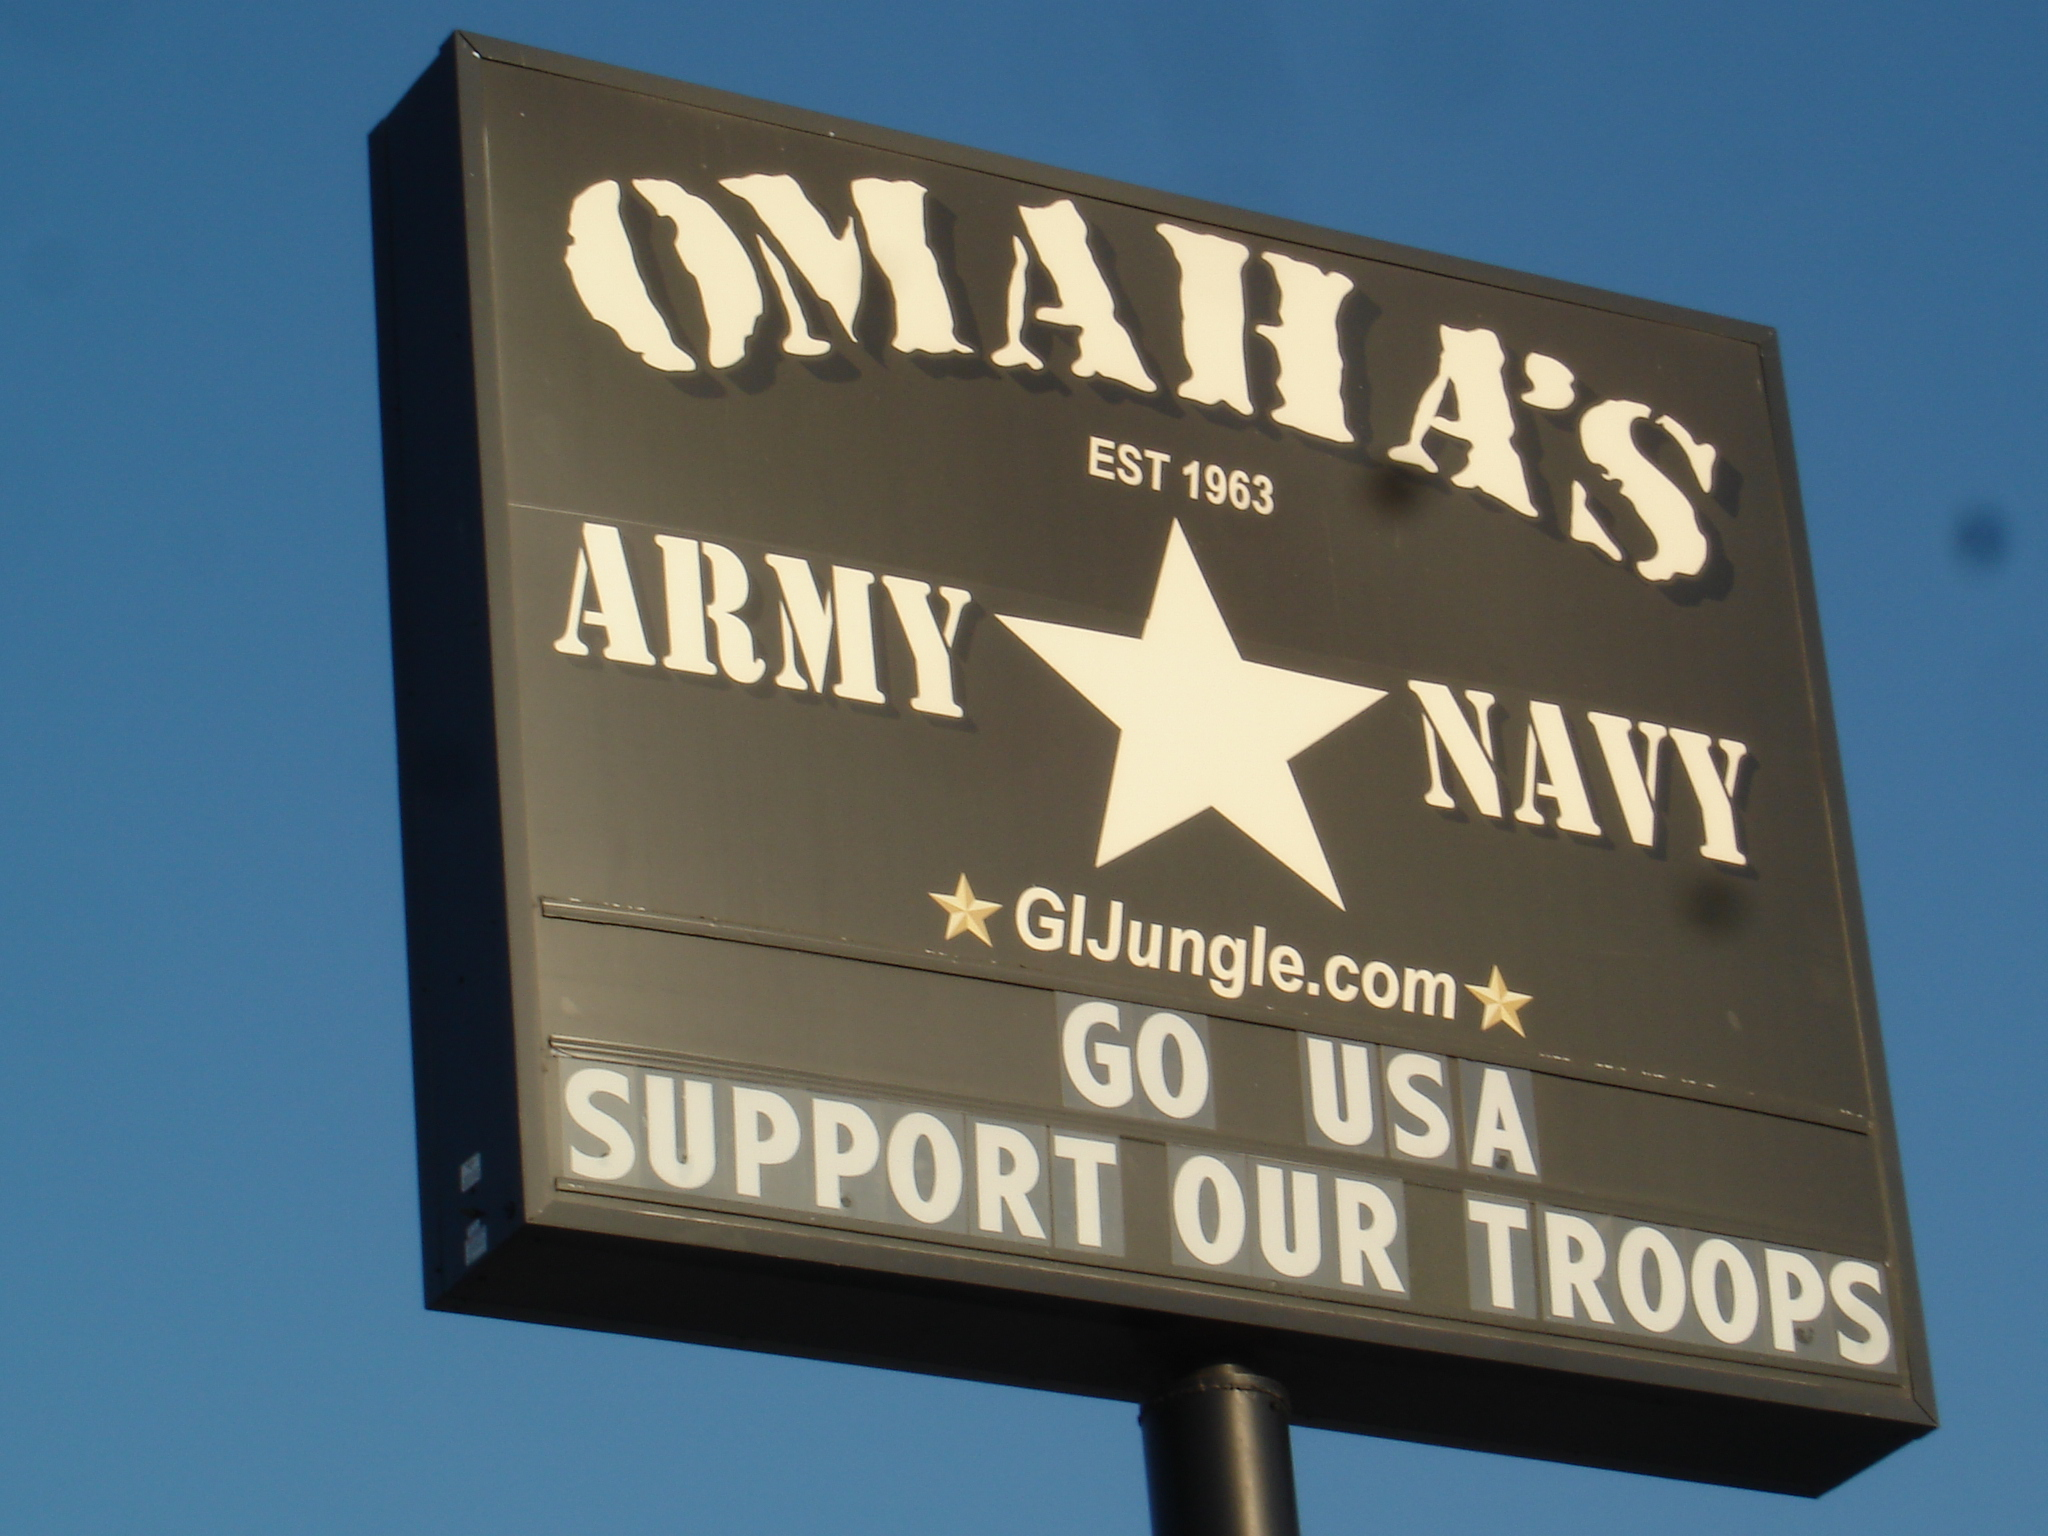 Find army and navy goods in Omaha, NE on Yellowbook. Get reviews and contact details for each business including videos, opening hours and more.